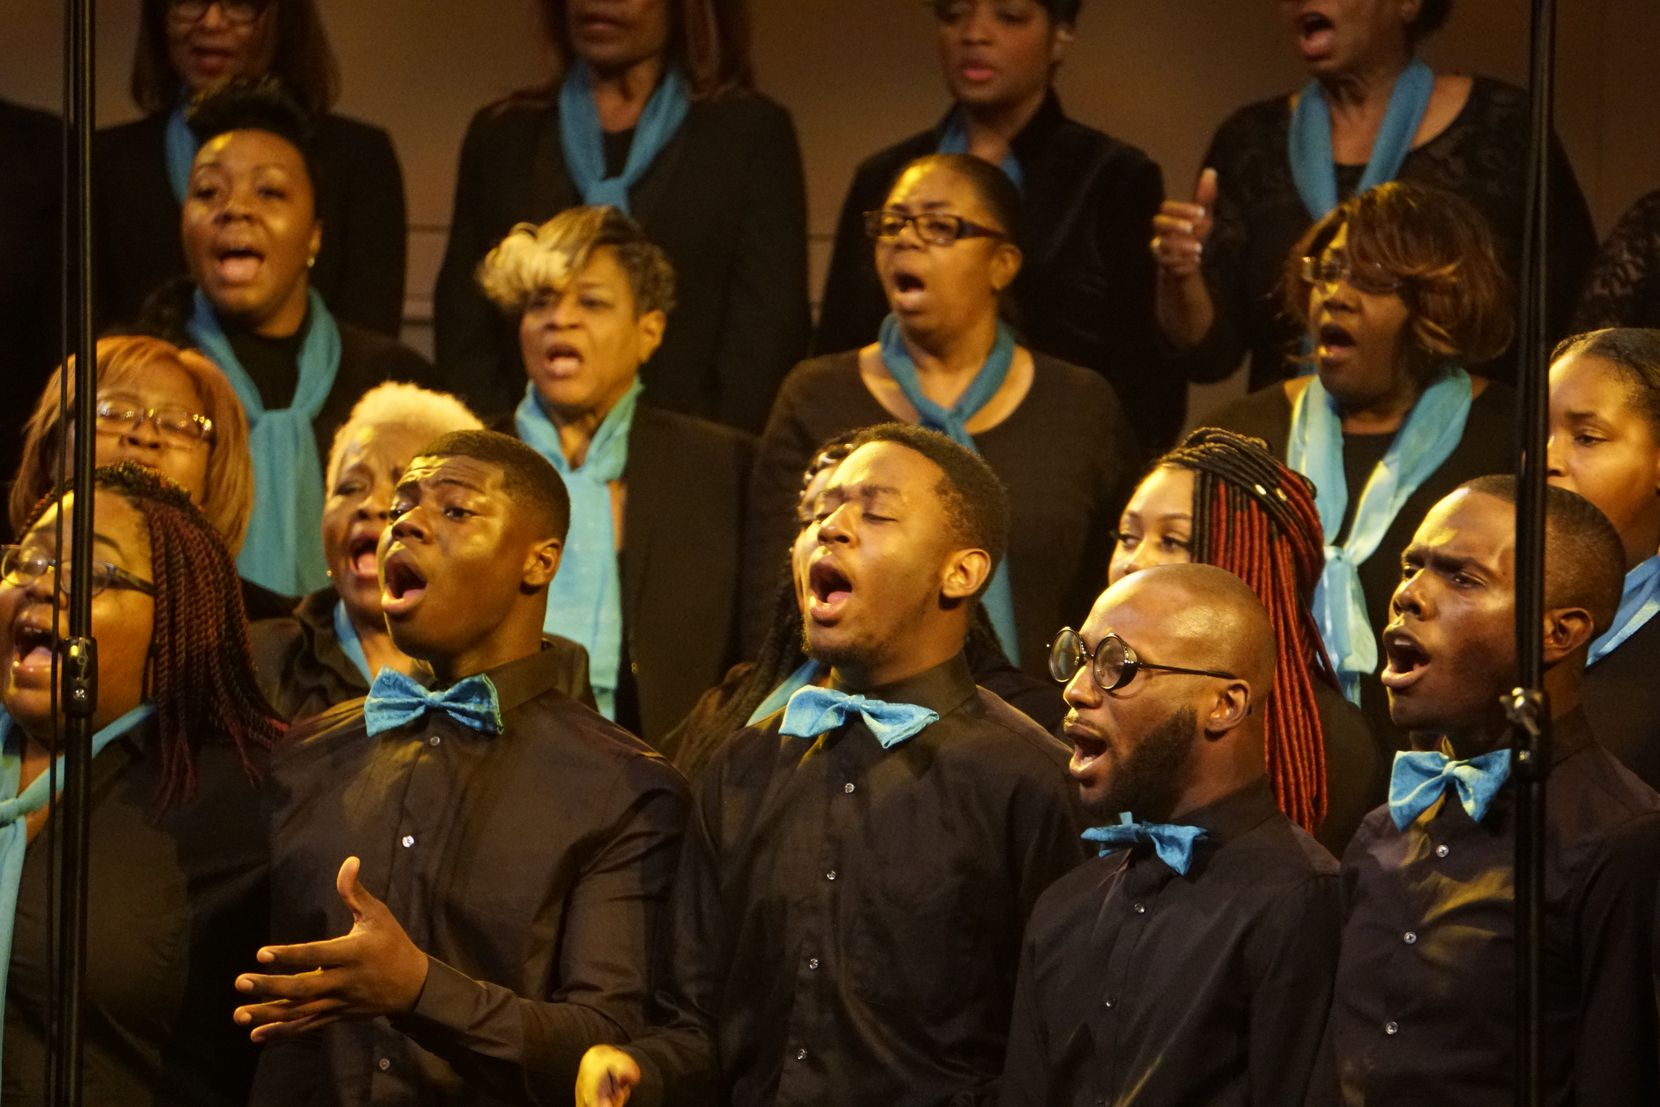 """The 200 member choir sang old and new songs during the """"Music and the Civil Rights Movement Concert at the Morton H.Meyerson Symphony Center in Dallas, Texas on Sunday, Jan. 14, 2018."""